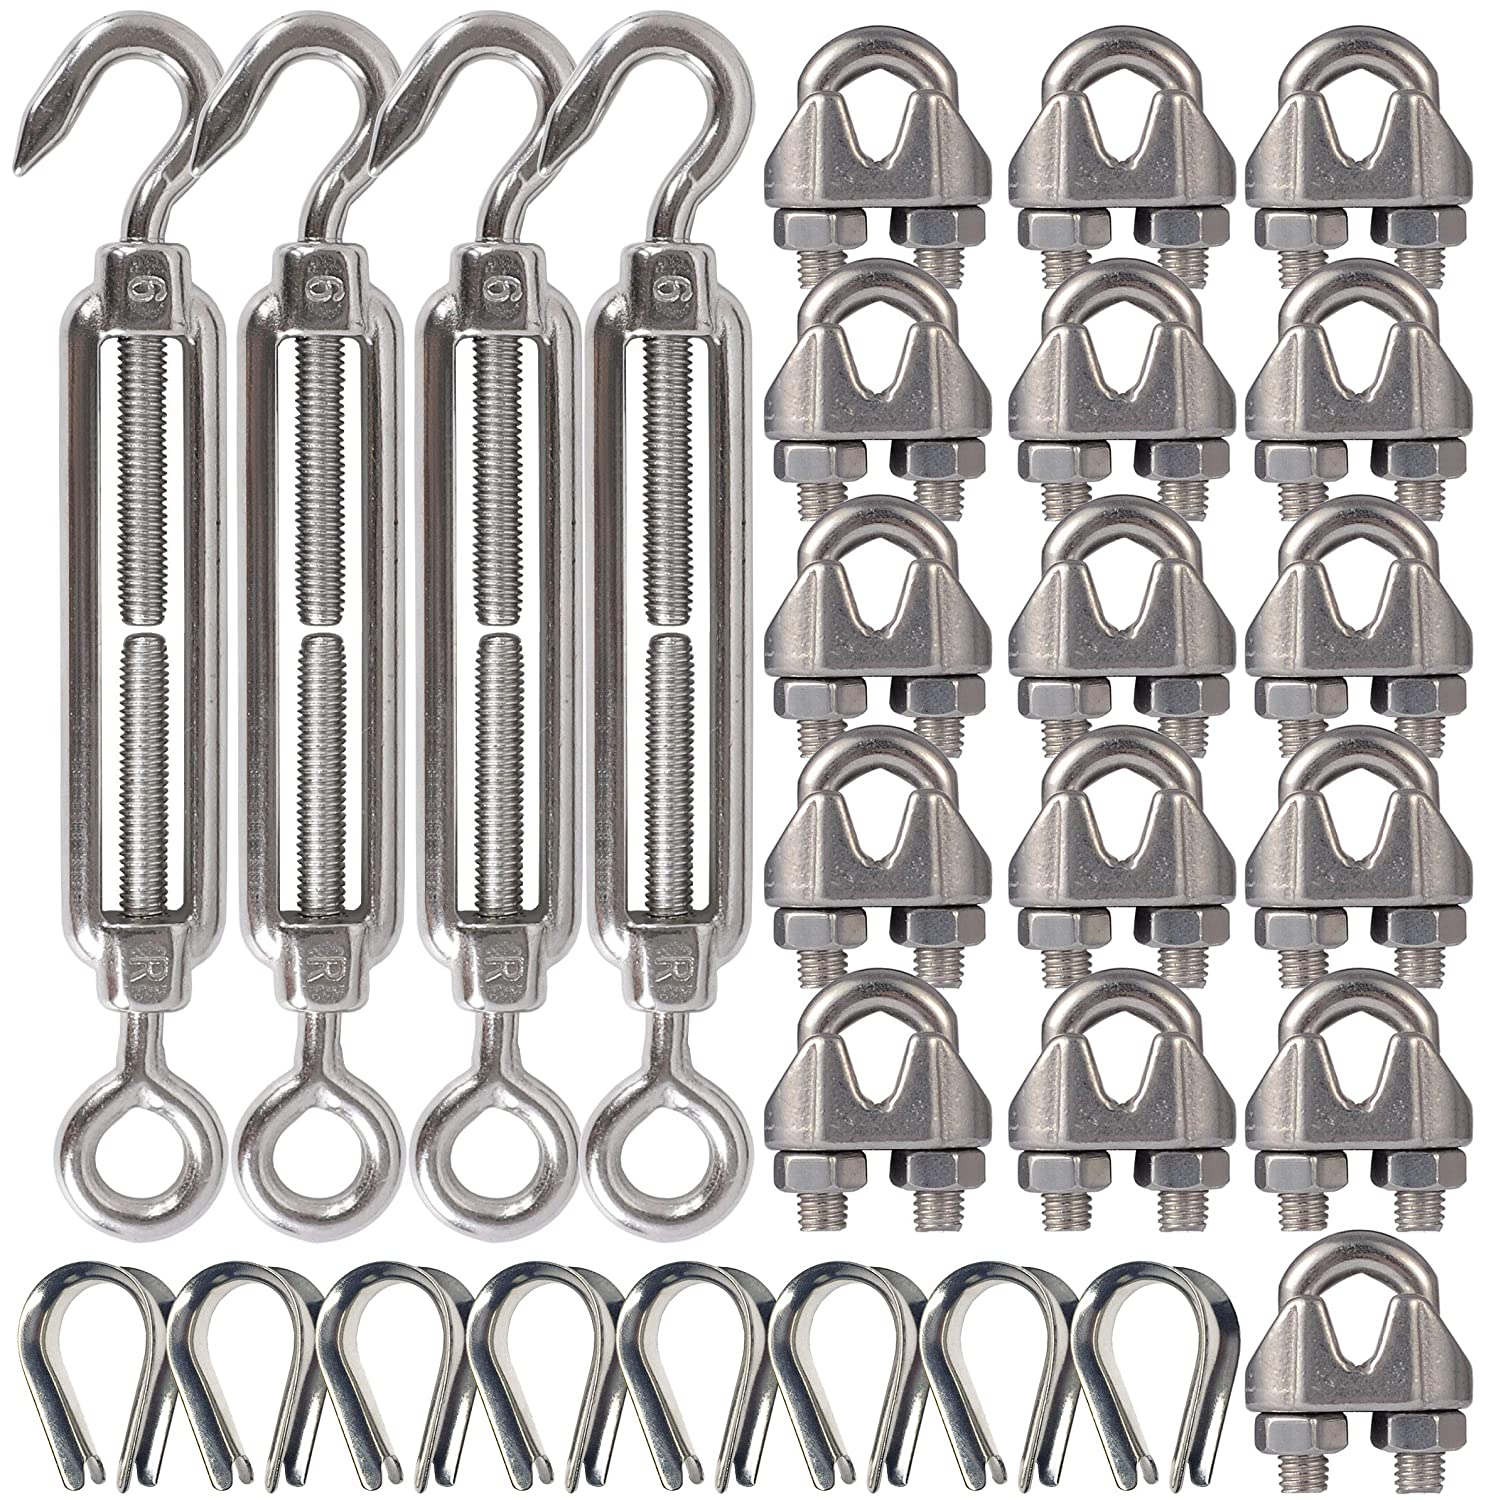 4-Pcs Turnbuckle/Tension(Eye&Hook, M6), 16-Pcs 1/8 Inch Wire Rope Cable Clip/Clamp(M3), 8-Pcs Thimble(M3), Stainless Steel Kit